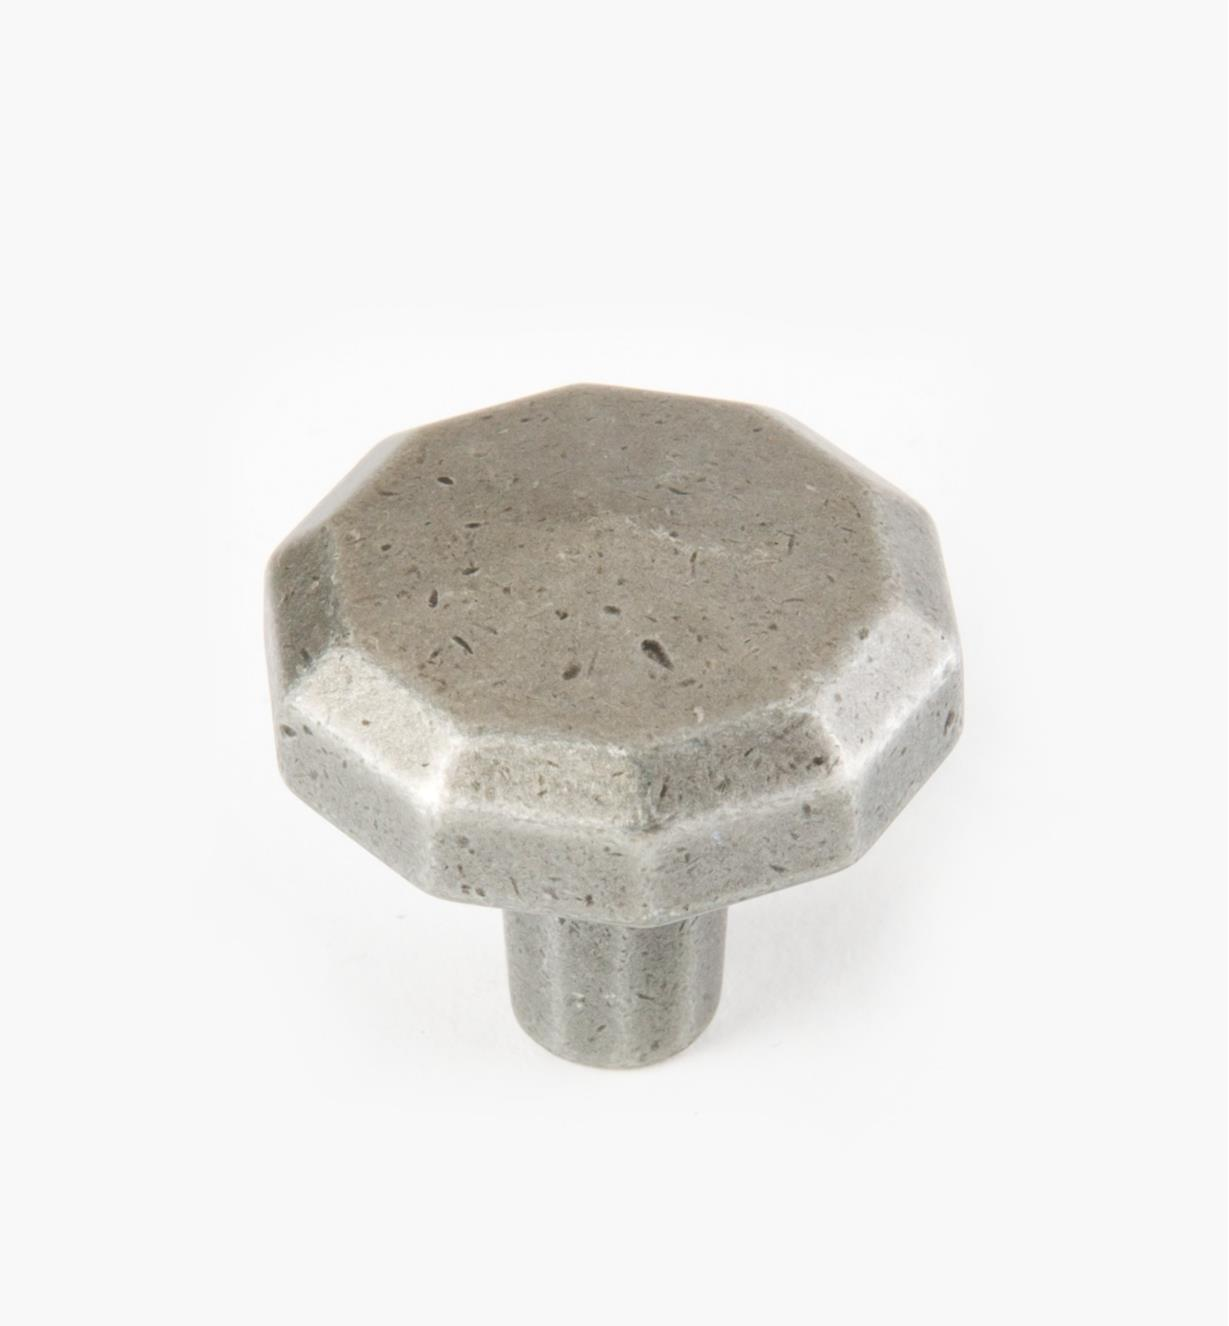 00A7521 - Tudor Pewter 32mm Knob, each